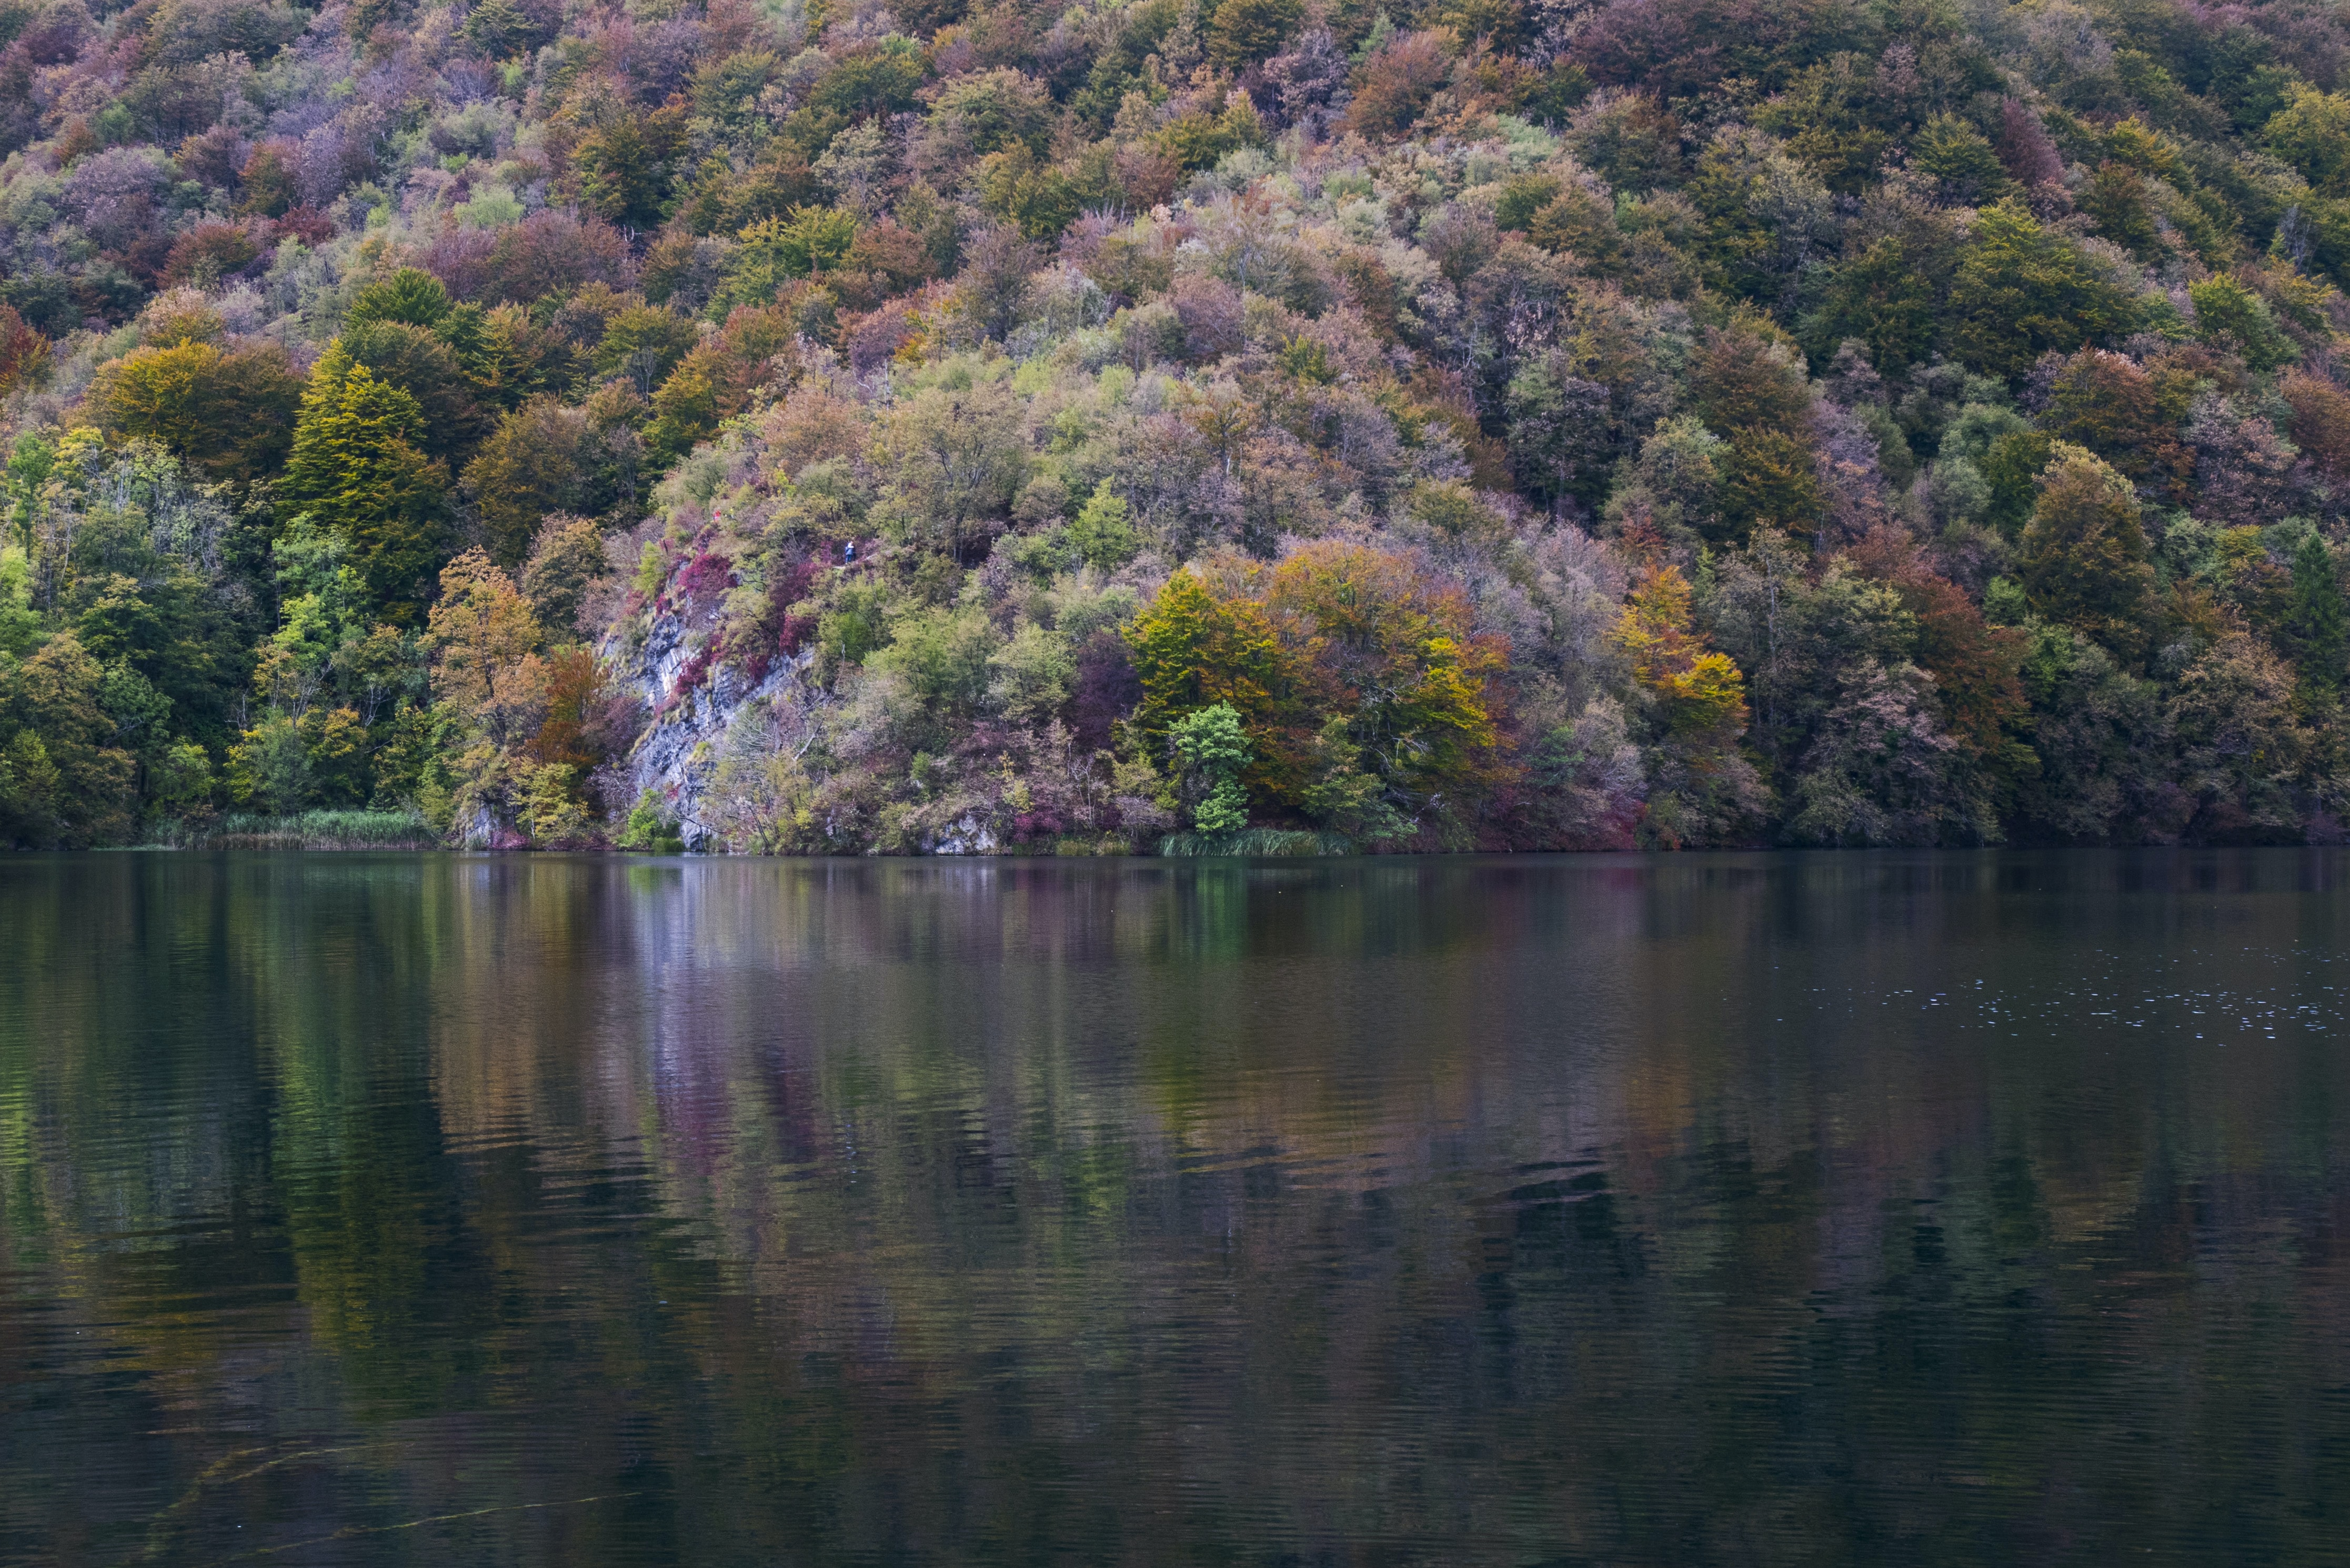 Colorful bushes and trees on the shore of a quiet lake in Plitvice Lakes National Park